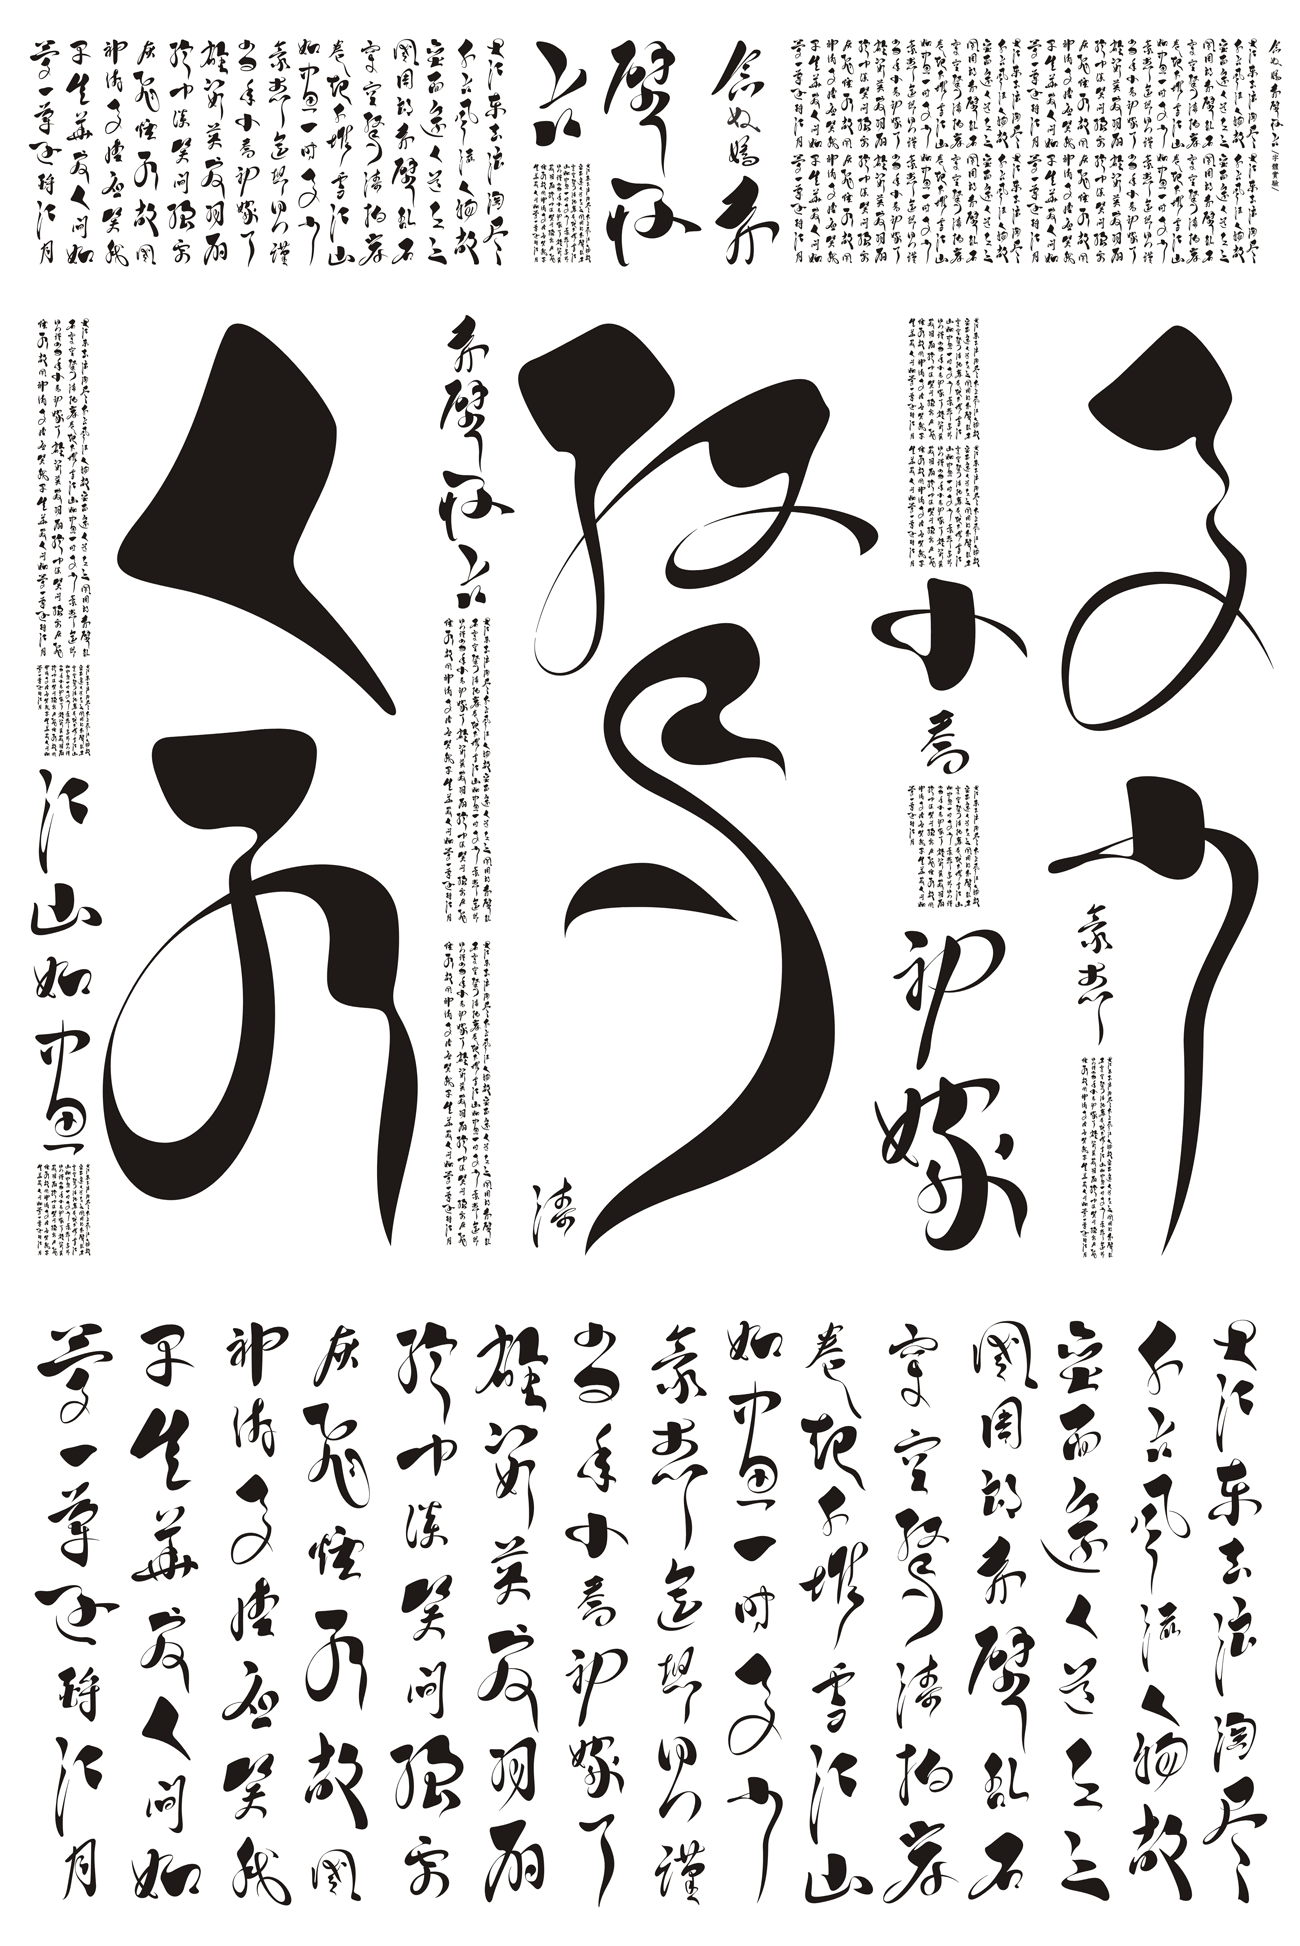 The spirit of cursive script by Zhang WeiMin